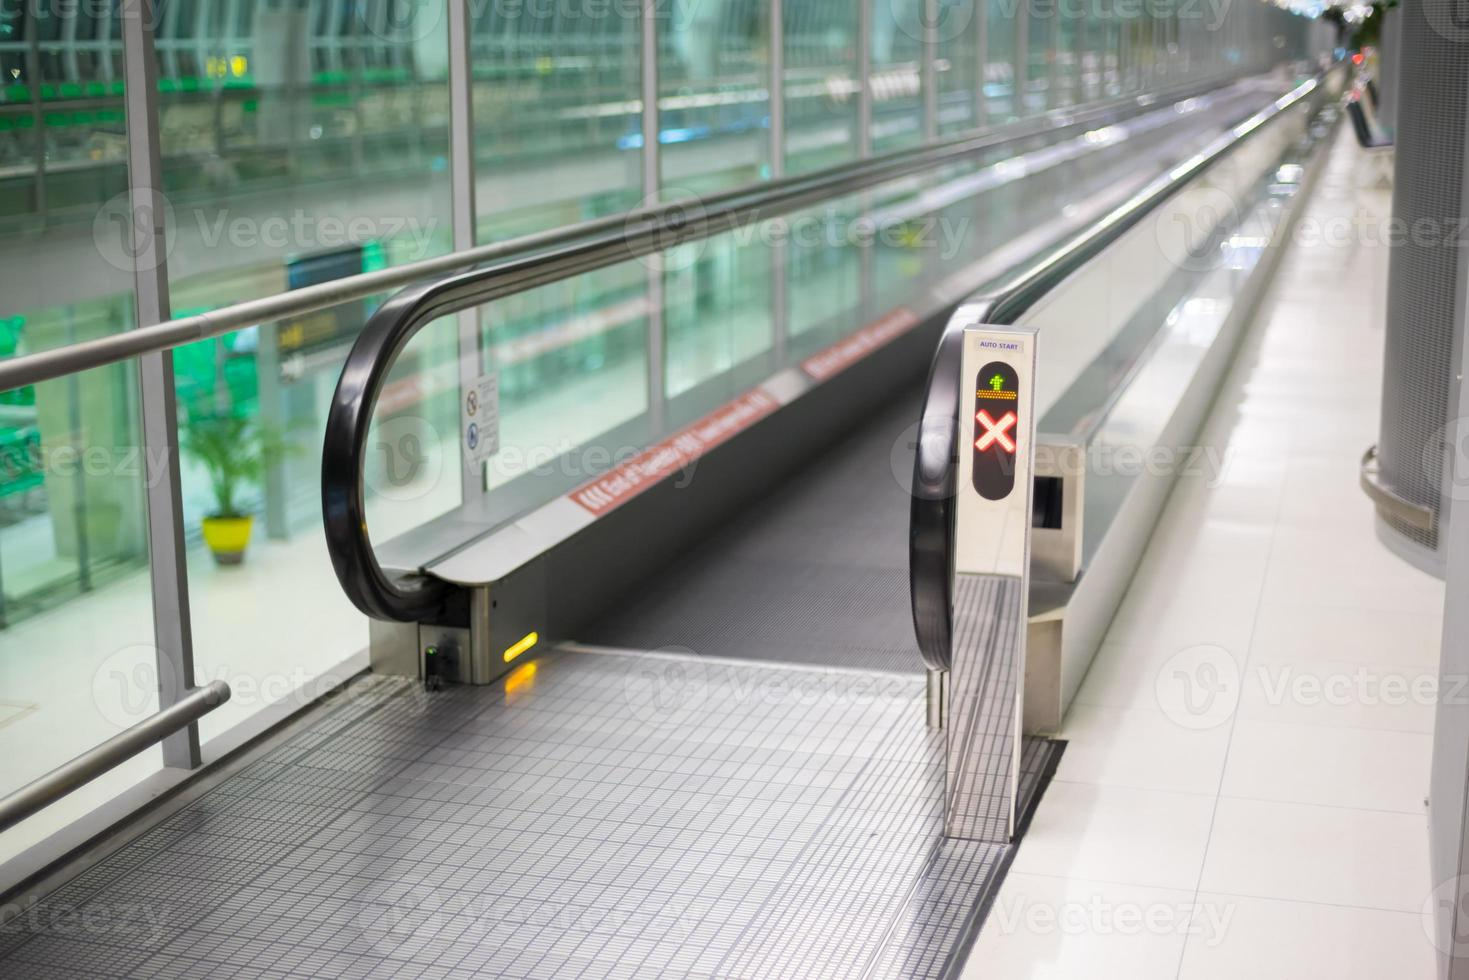 Walkways at the airport for passengers photo